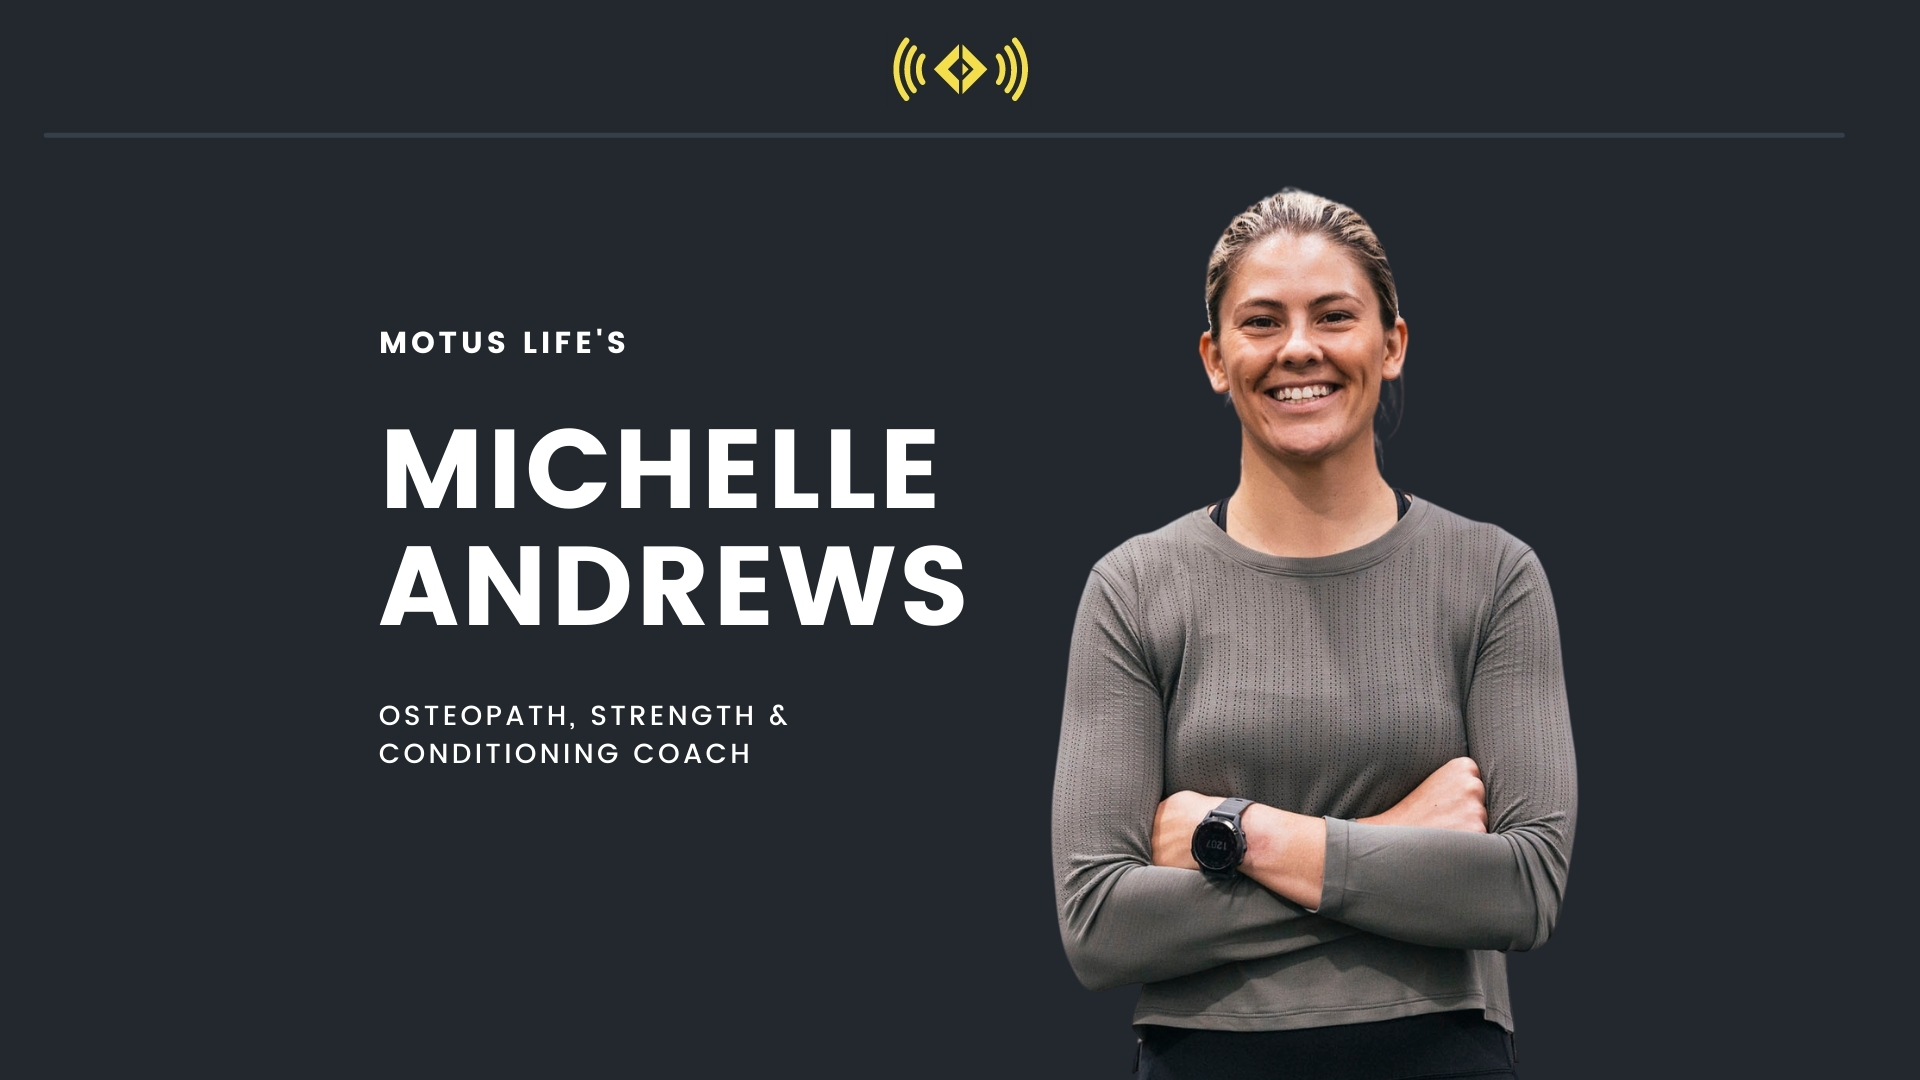 #176 - Osteopathy & S&C With Michelle Andrews From Motus Life